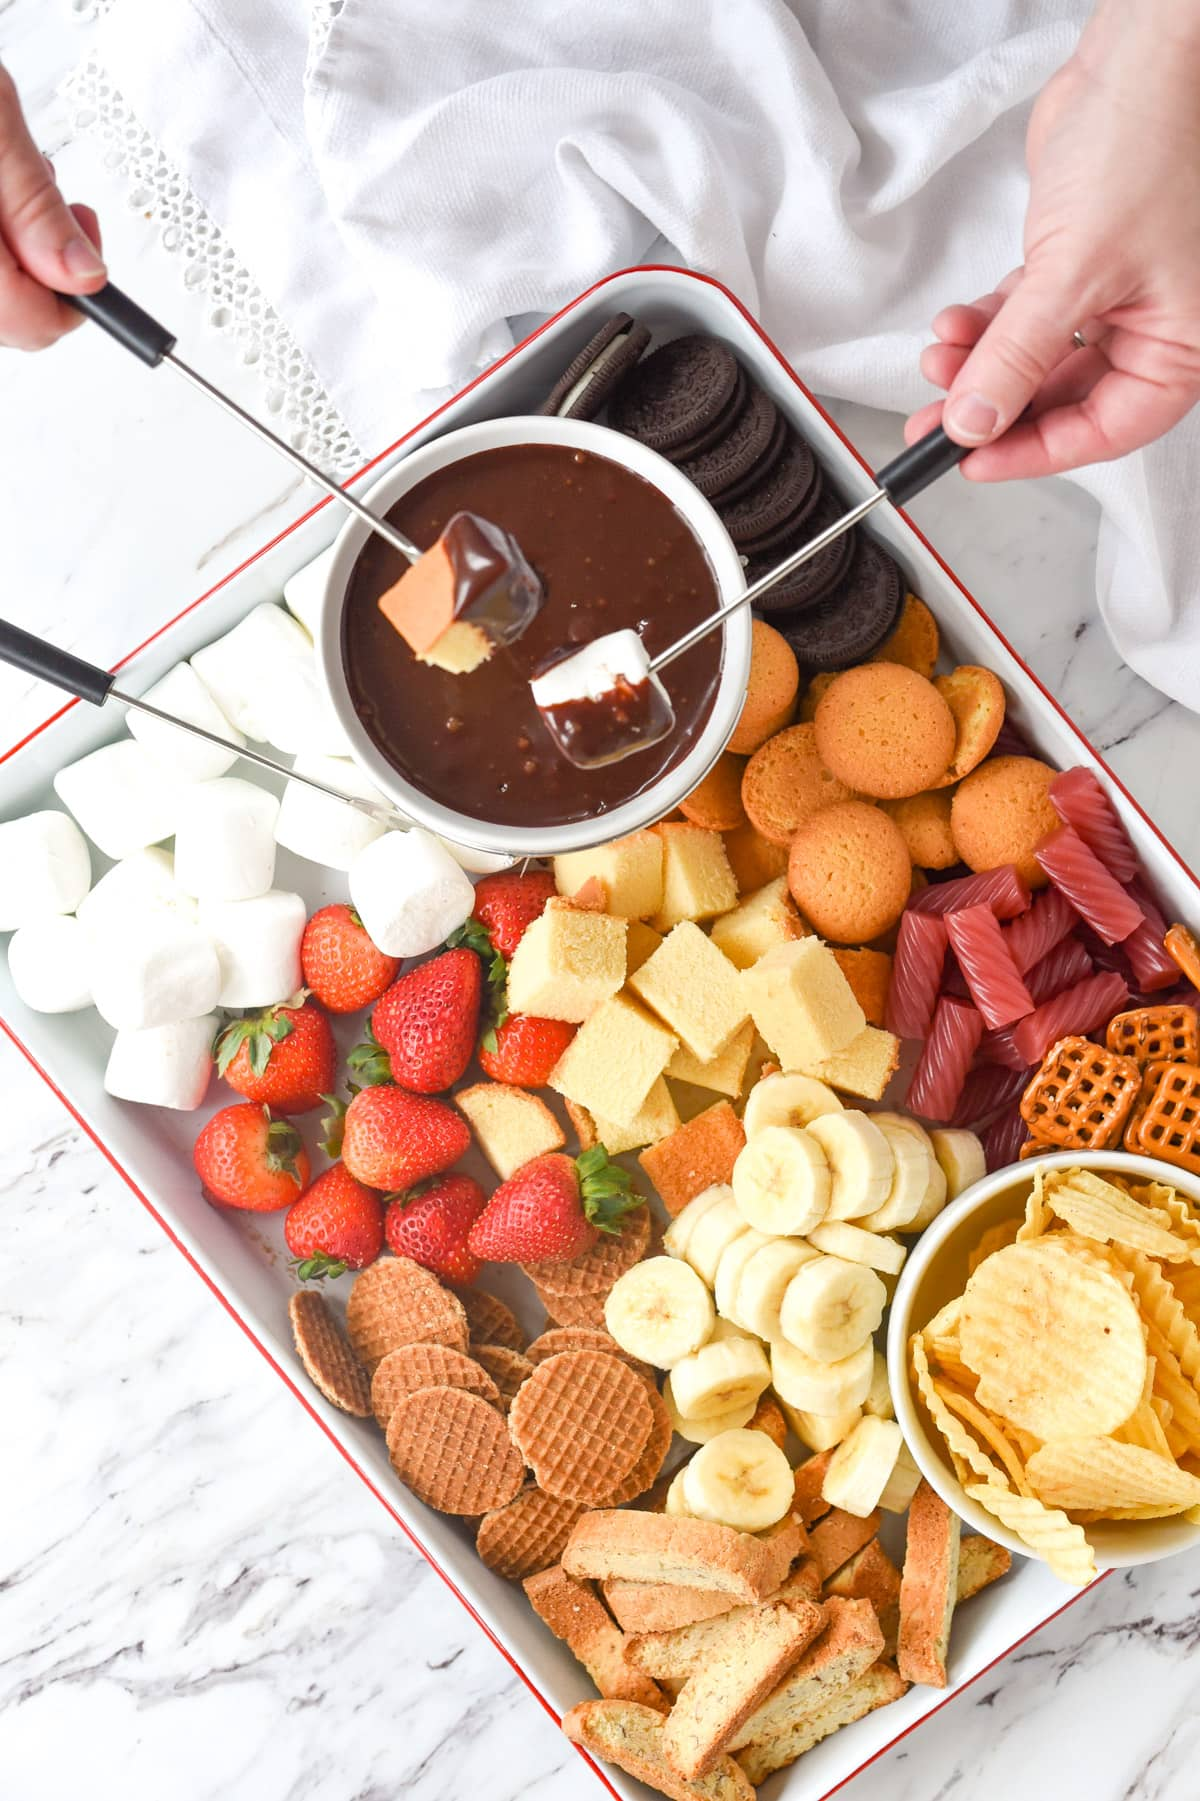 Top Ten Posts of 2020 - chocolate fondue